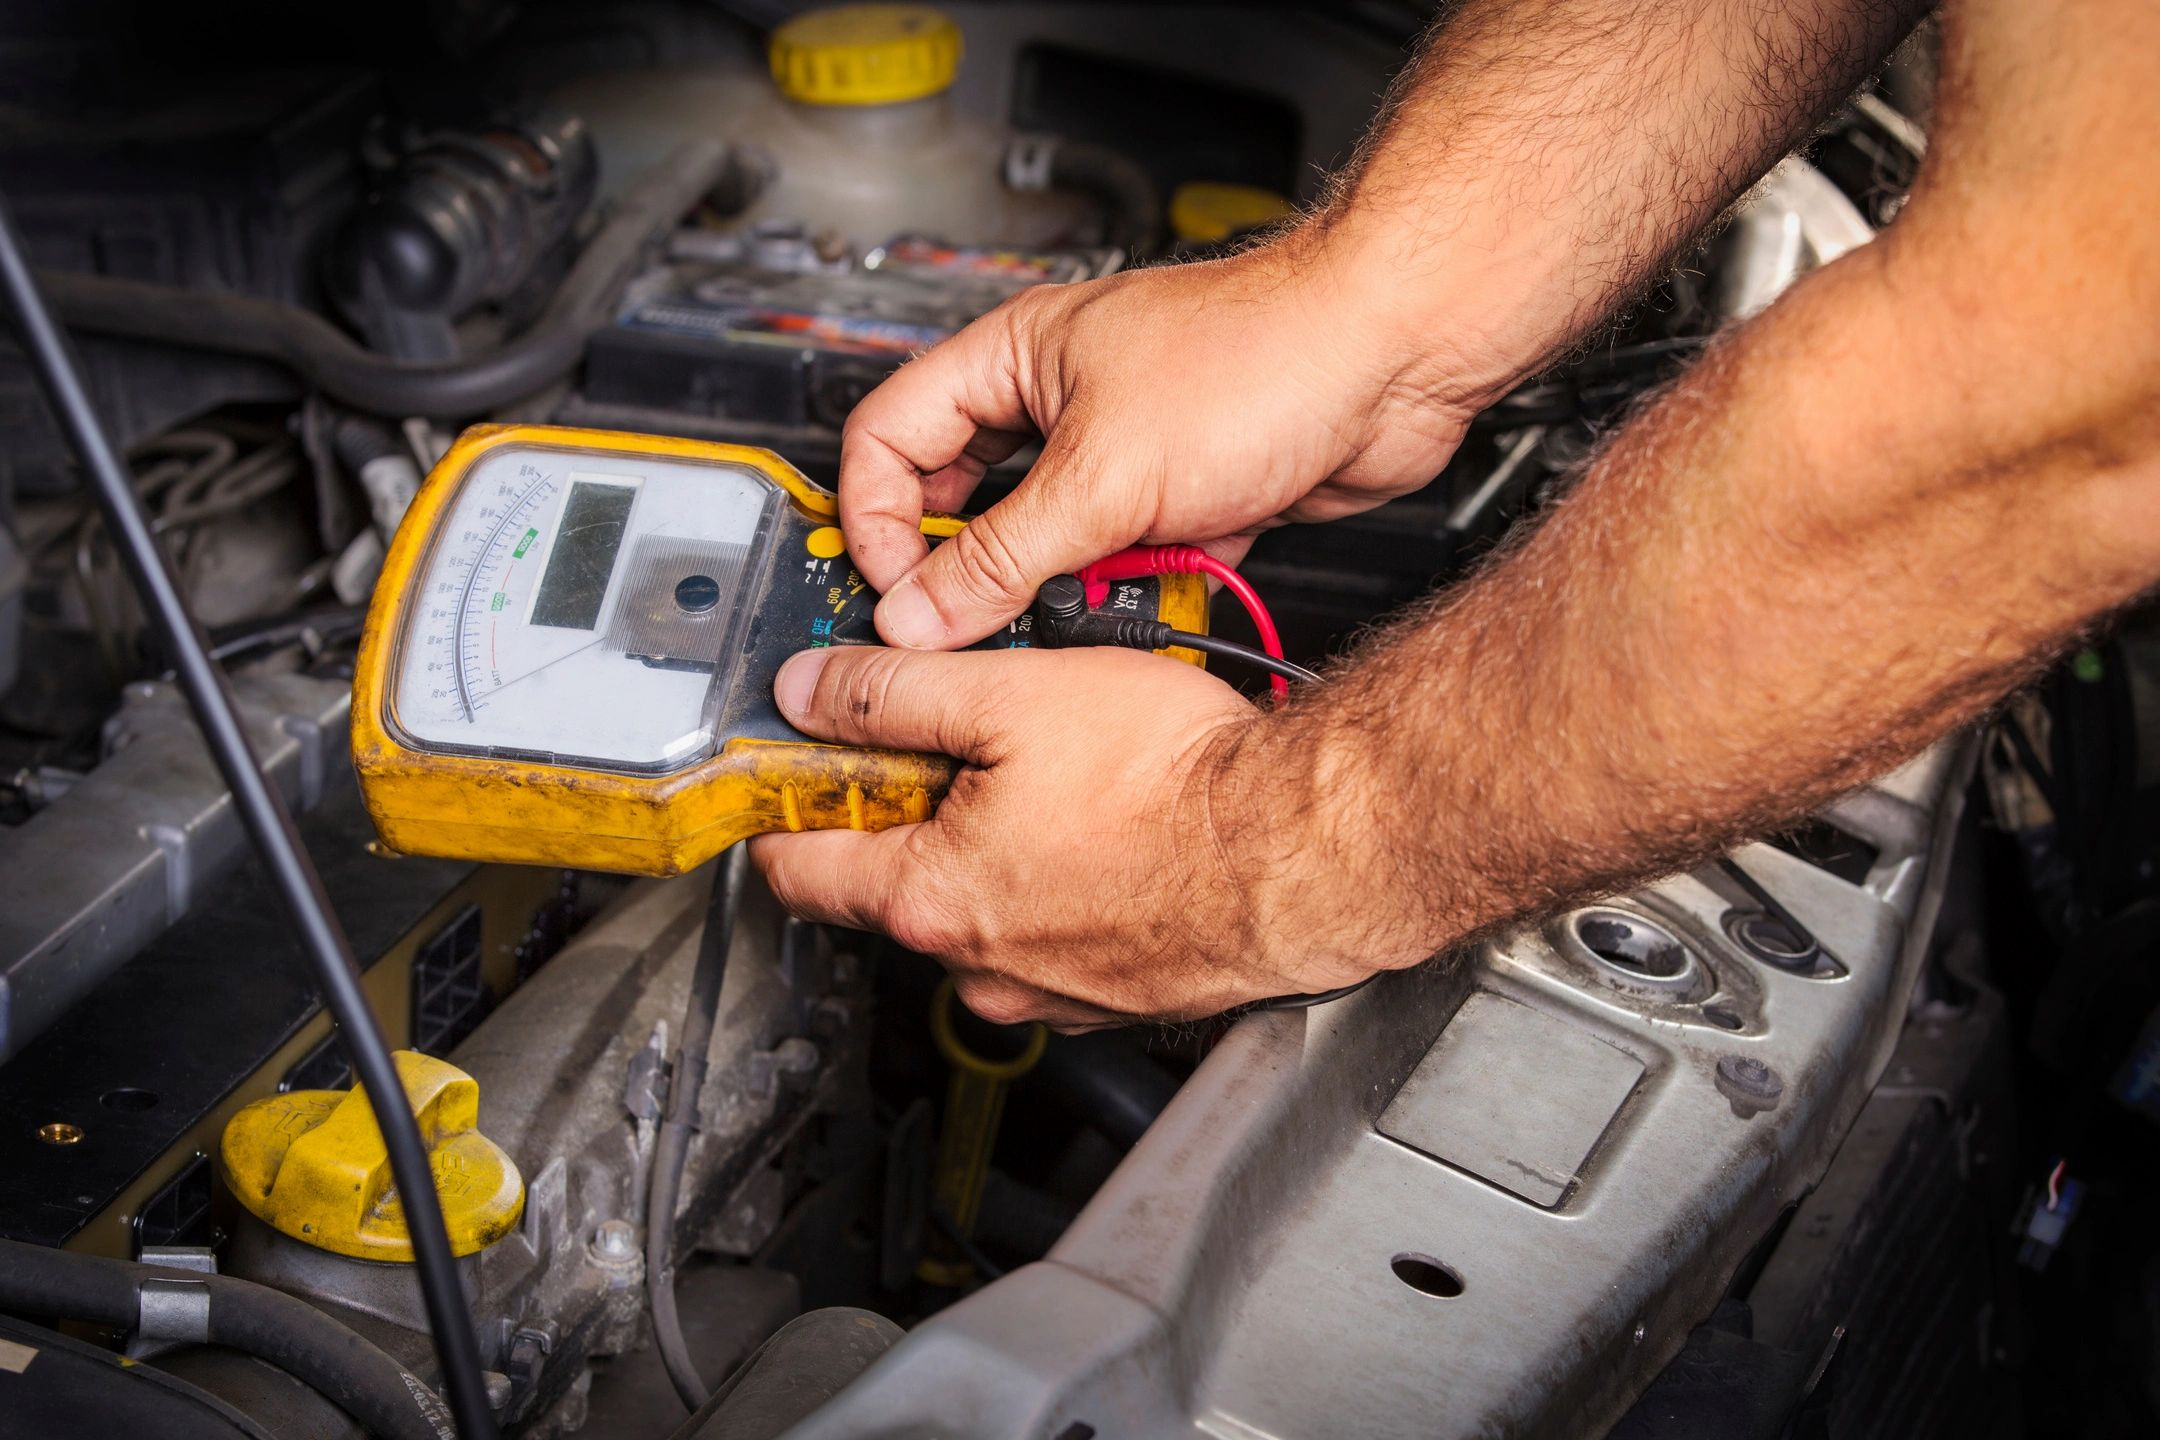 Tidewater Auto Electric Of Chesapeake Expert Electrical And Car Wiring Harness Fabrication Complete Repair In Norfolk Virginia